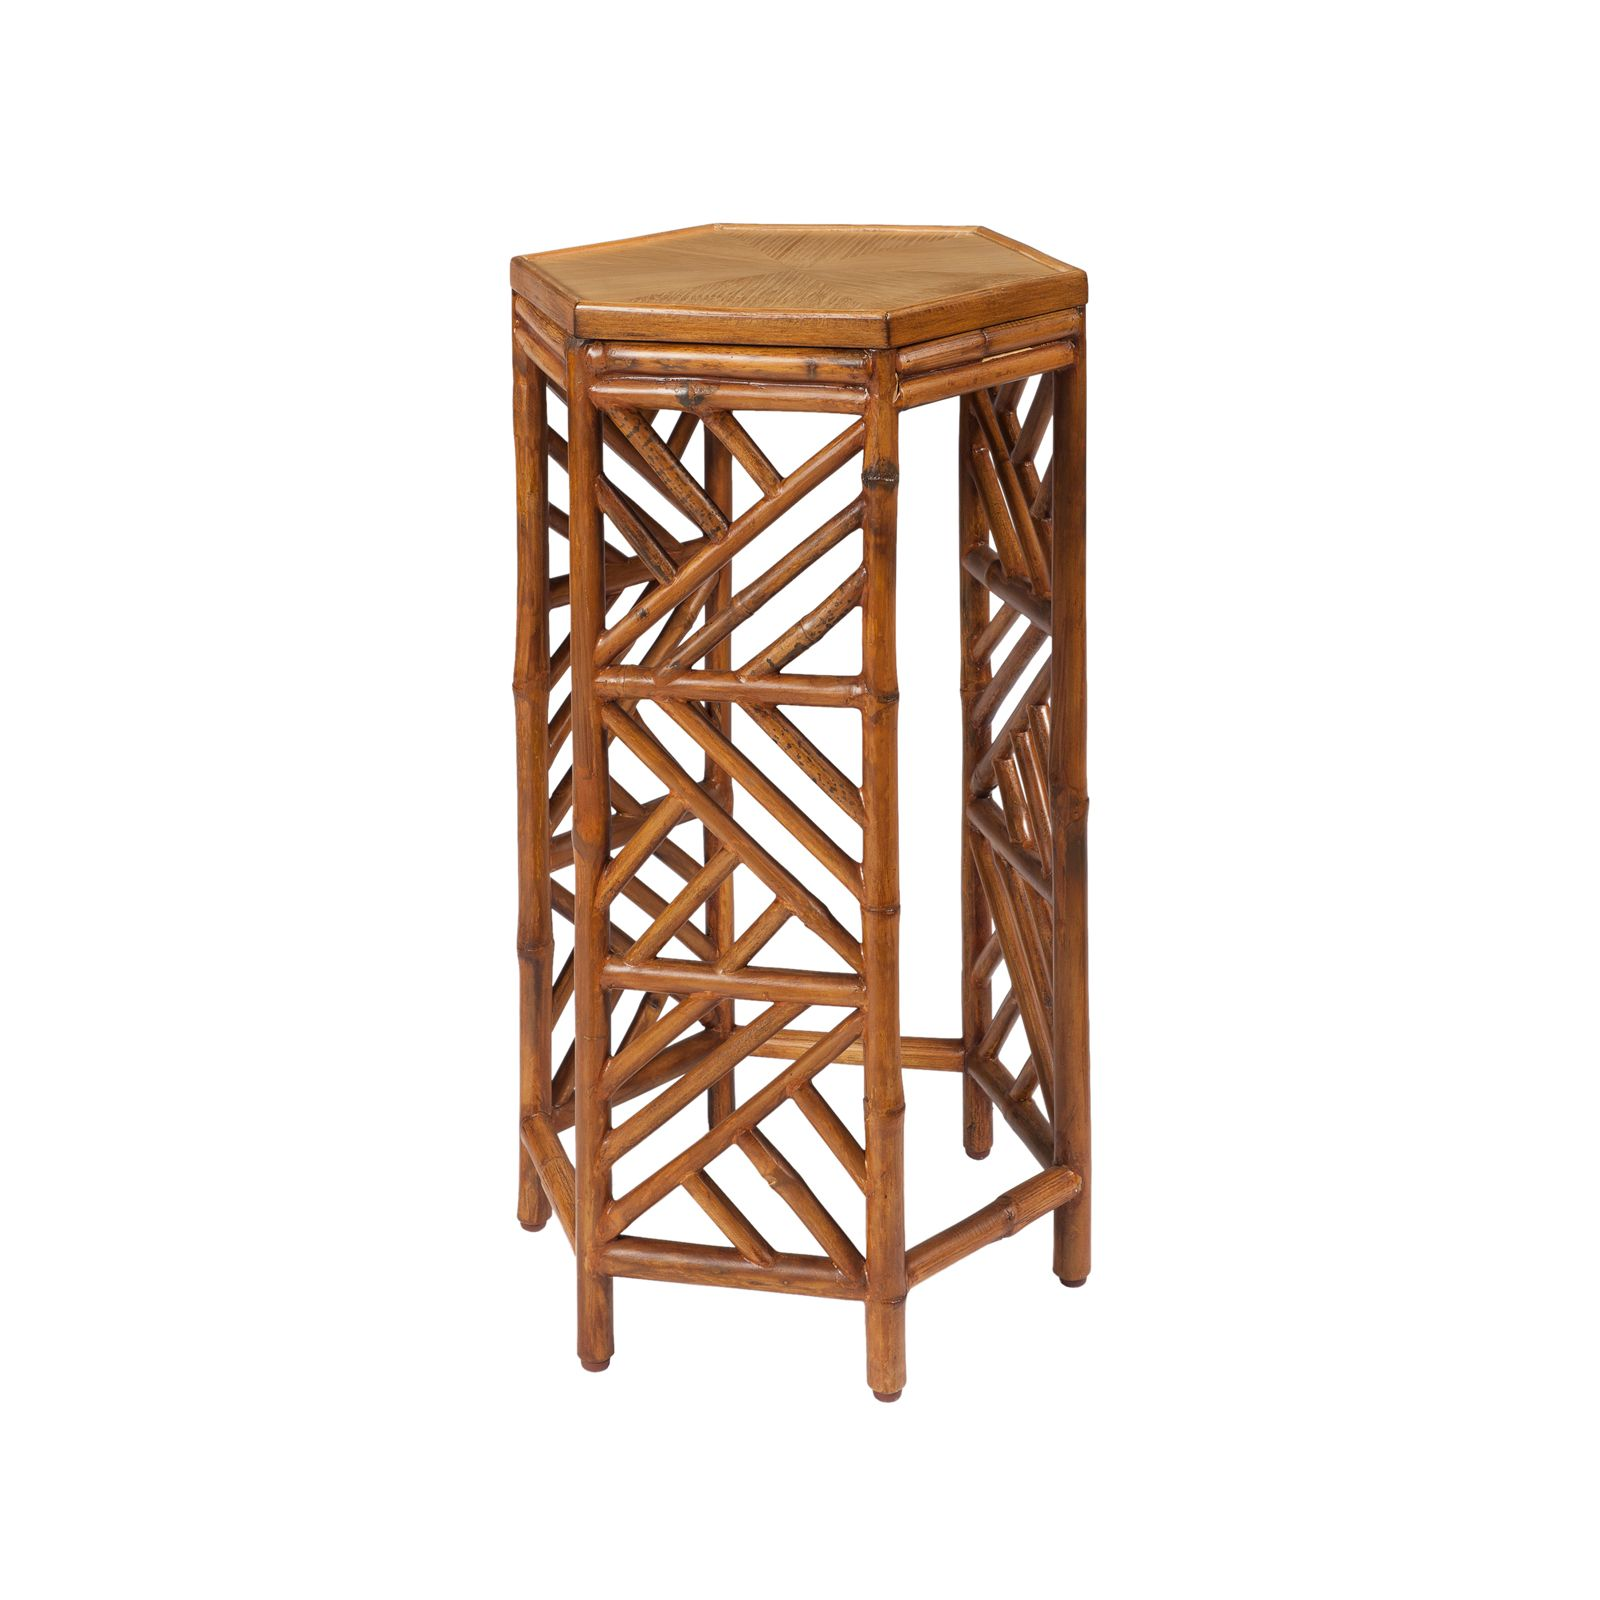 club tro ana side table dotandbo gardens safavieh janika accent live edge brown threshold west elm shelves modern outdoor chairs small wine cabinet gazebo trestle dining sideboard